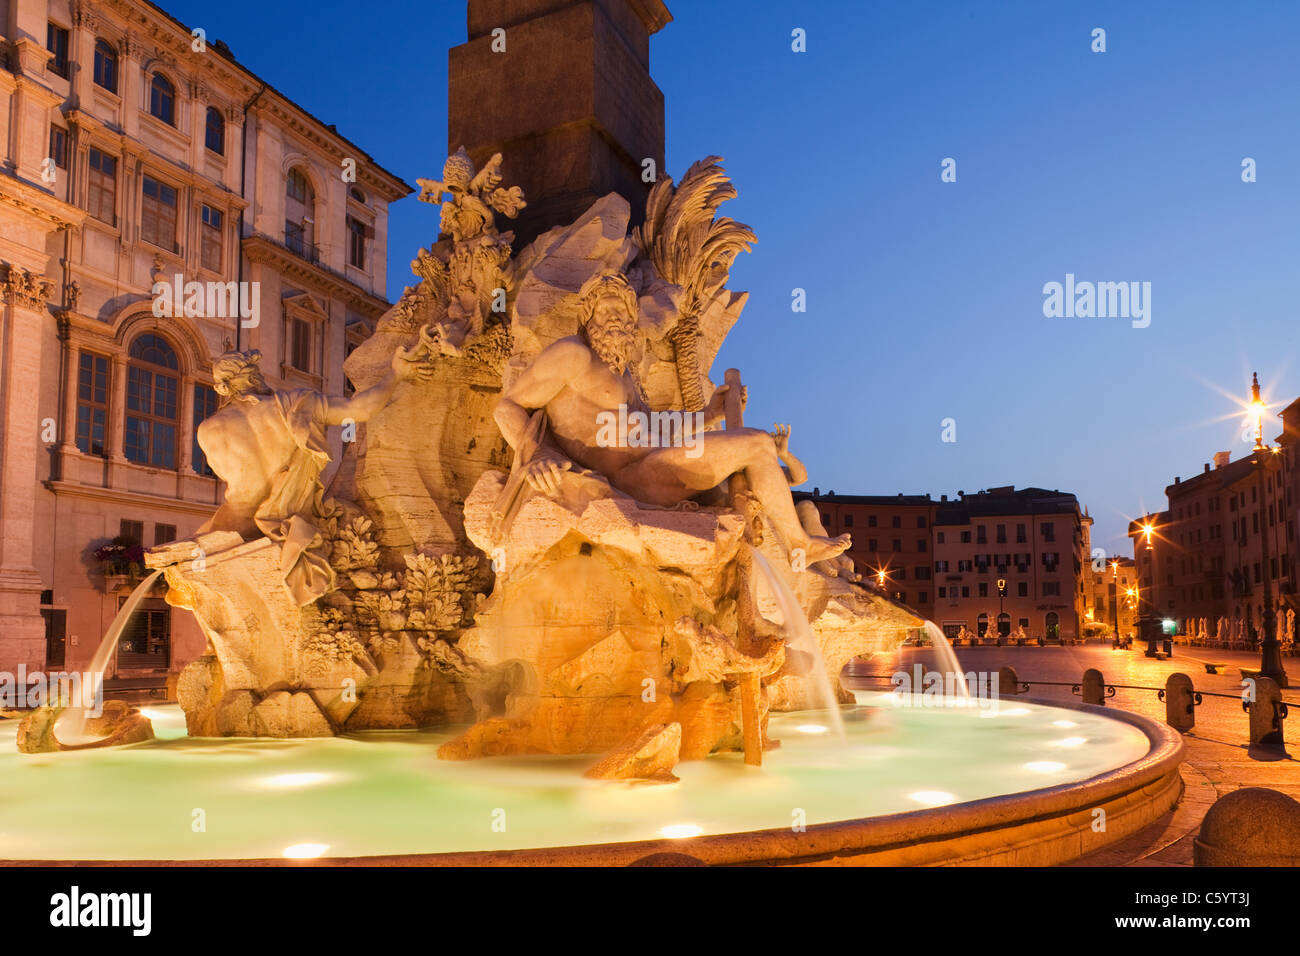 Fountain of the Four Rivers, Piazza Navona, Rome, Italy - Stock Image